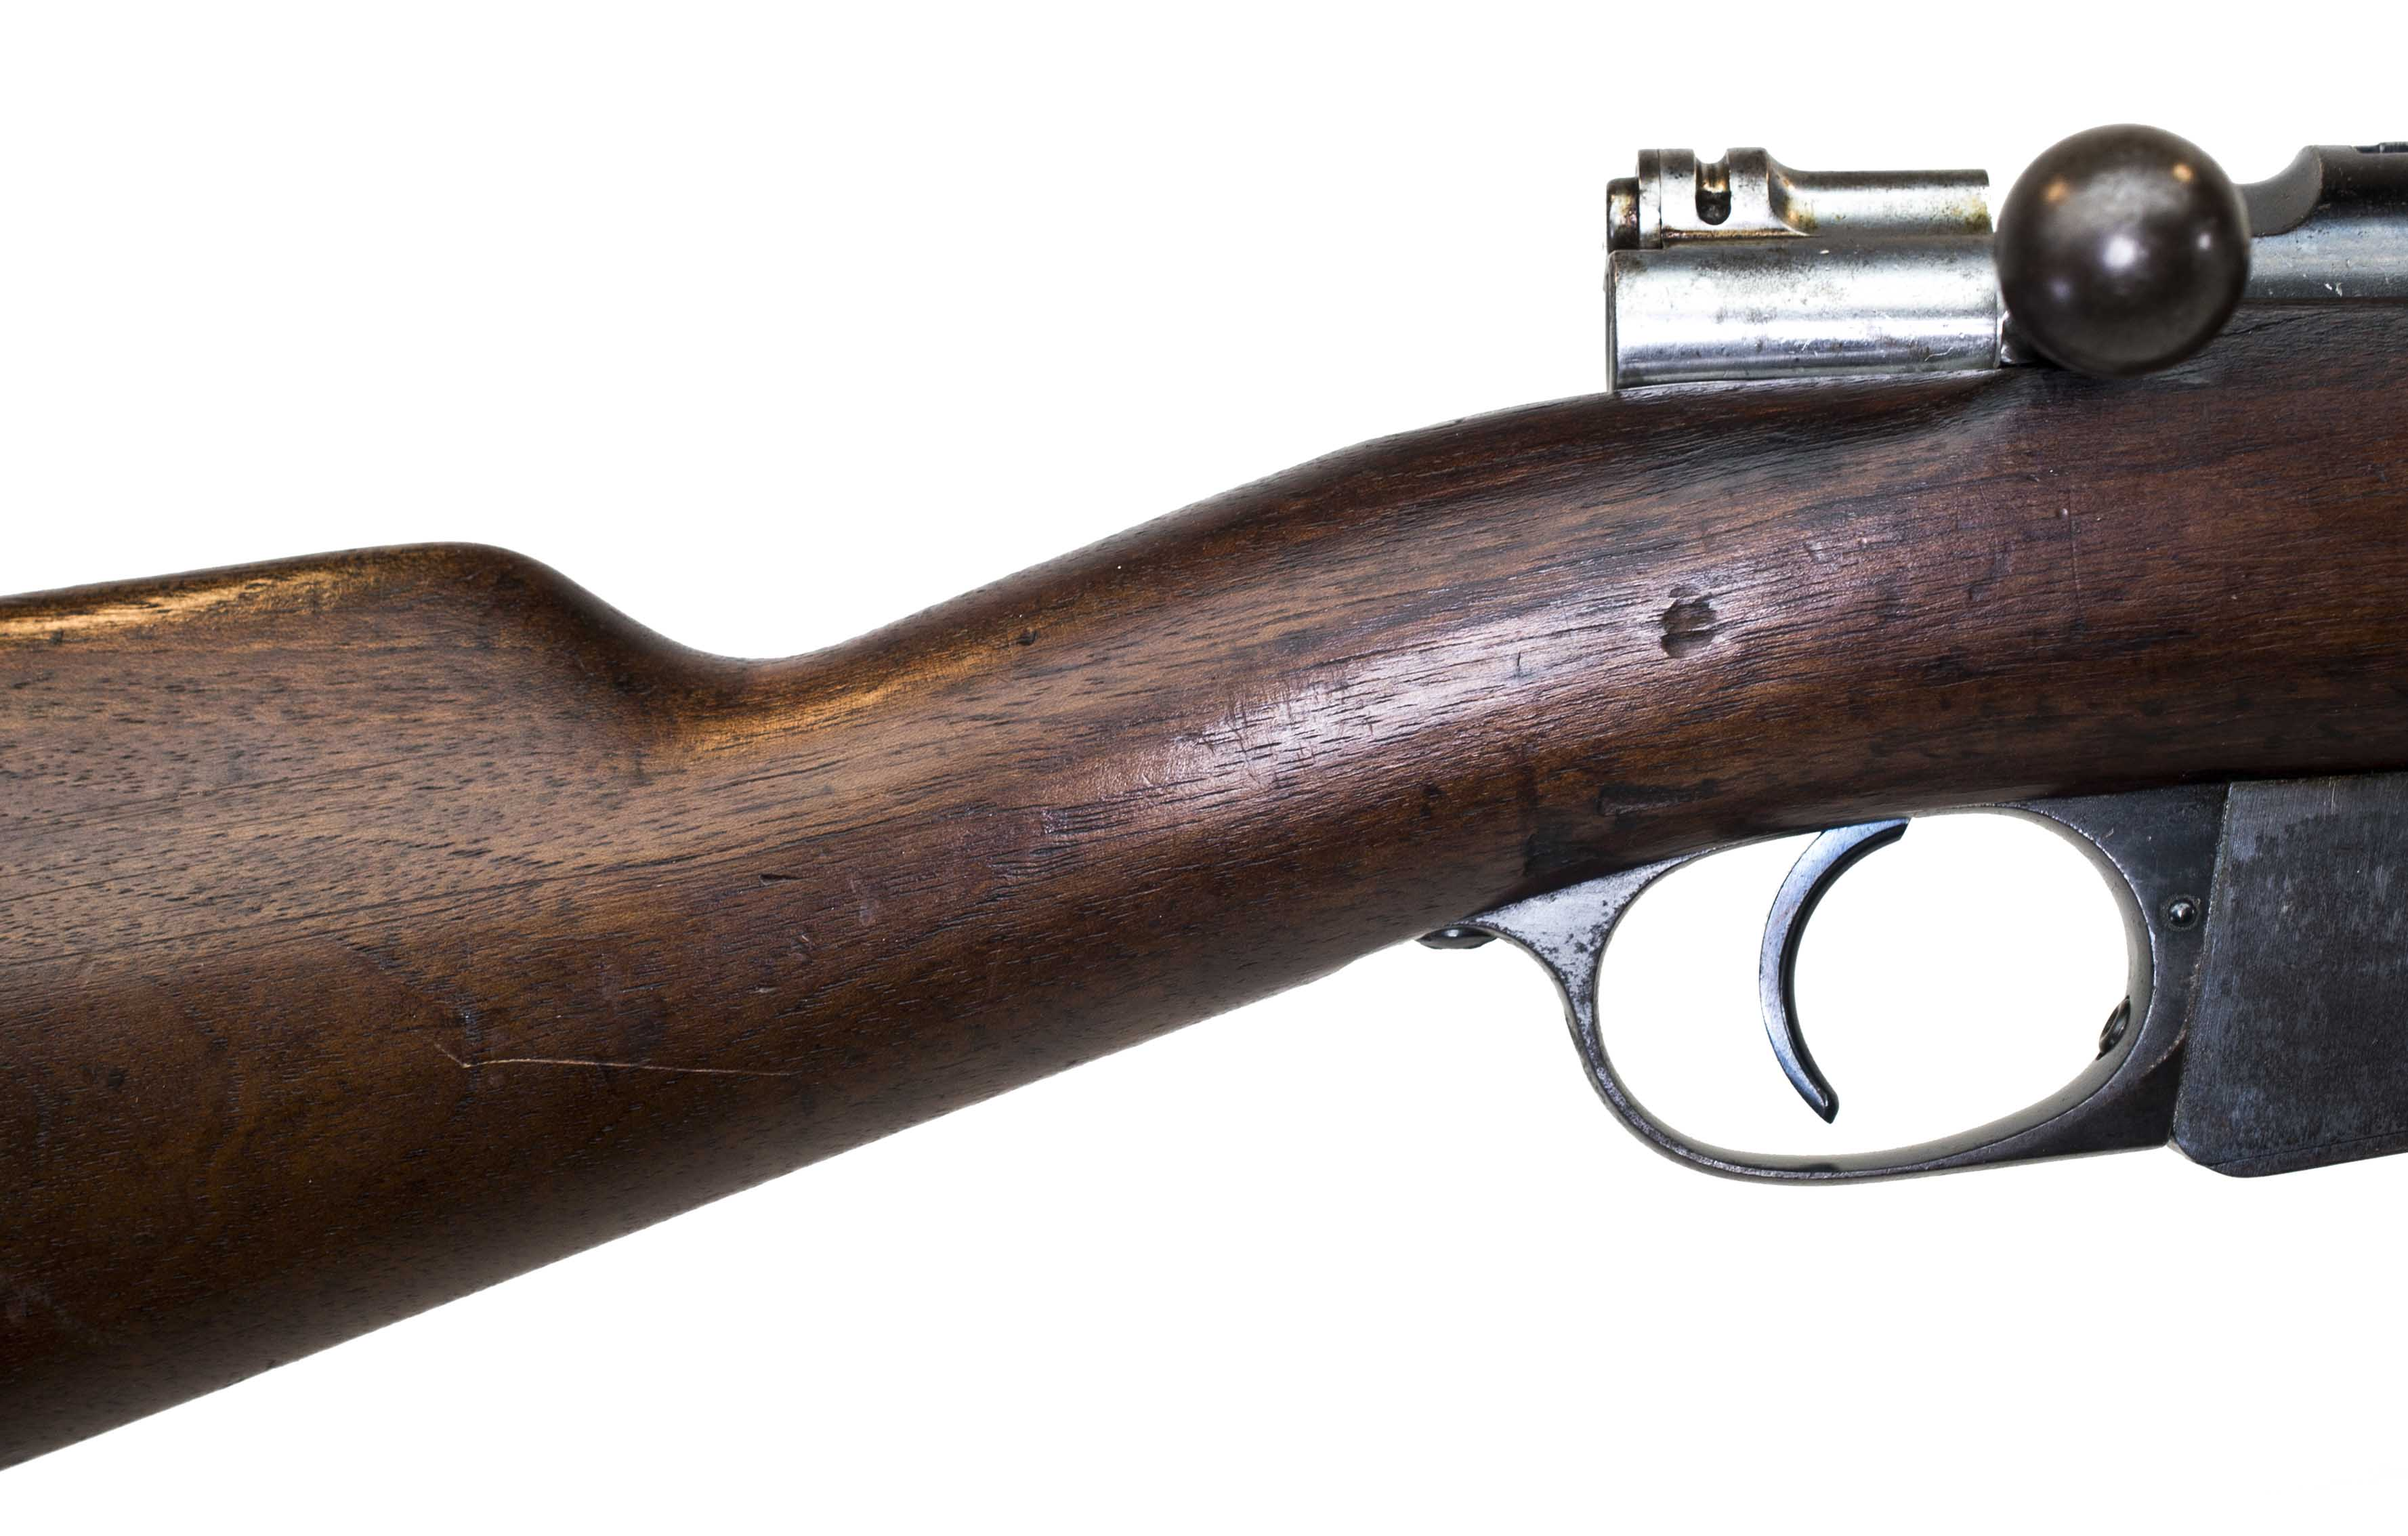 ARGENTINE MAUSER 1891 (Auction ID: 6011075, End Time : Nov  15, 2016